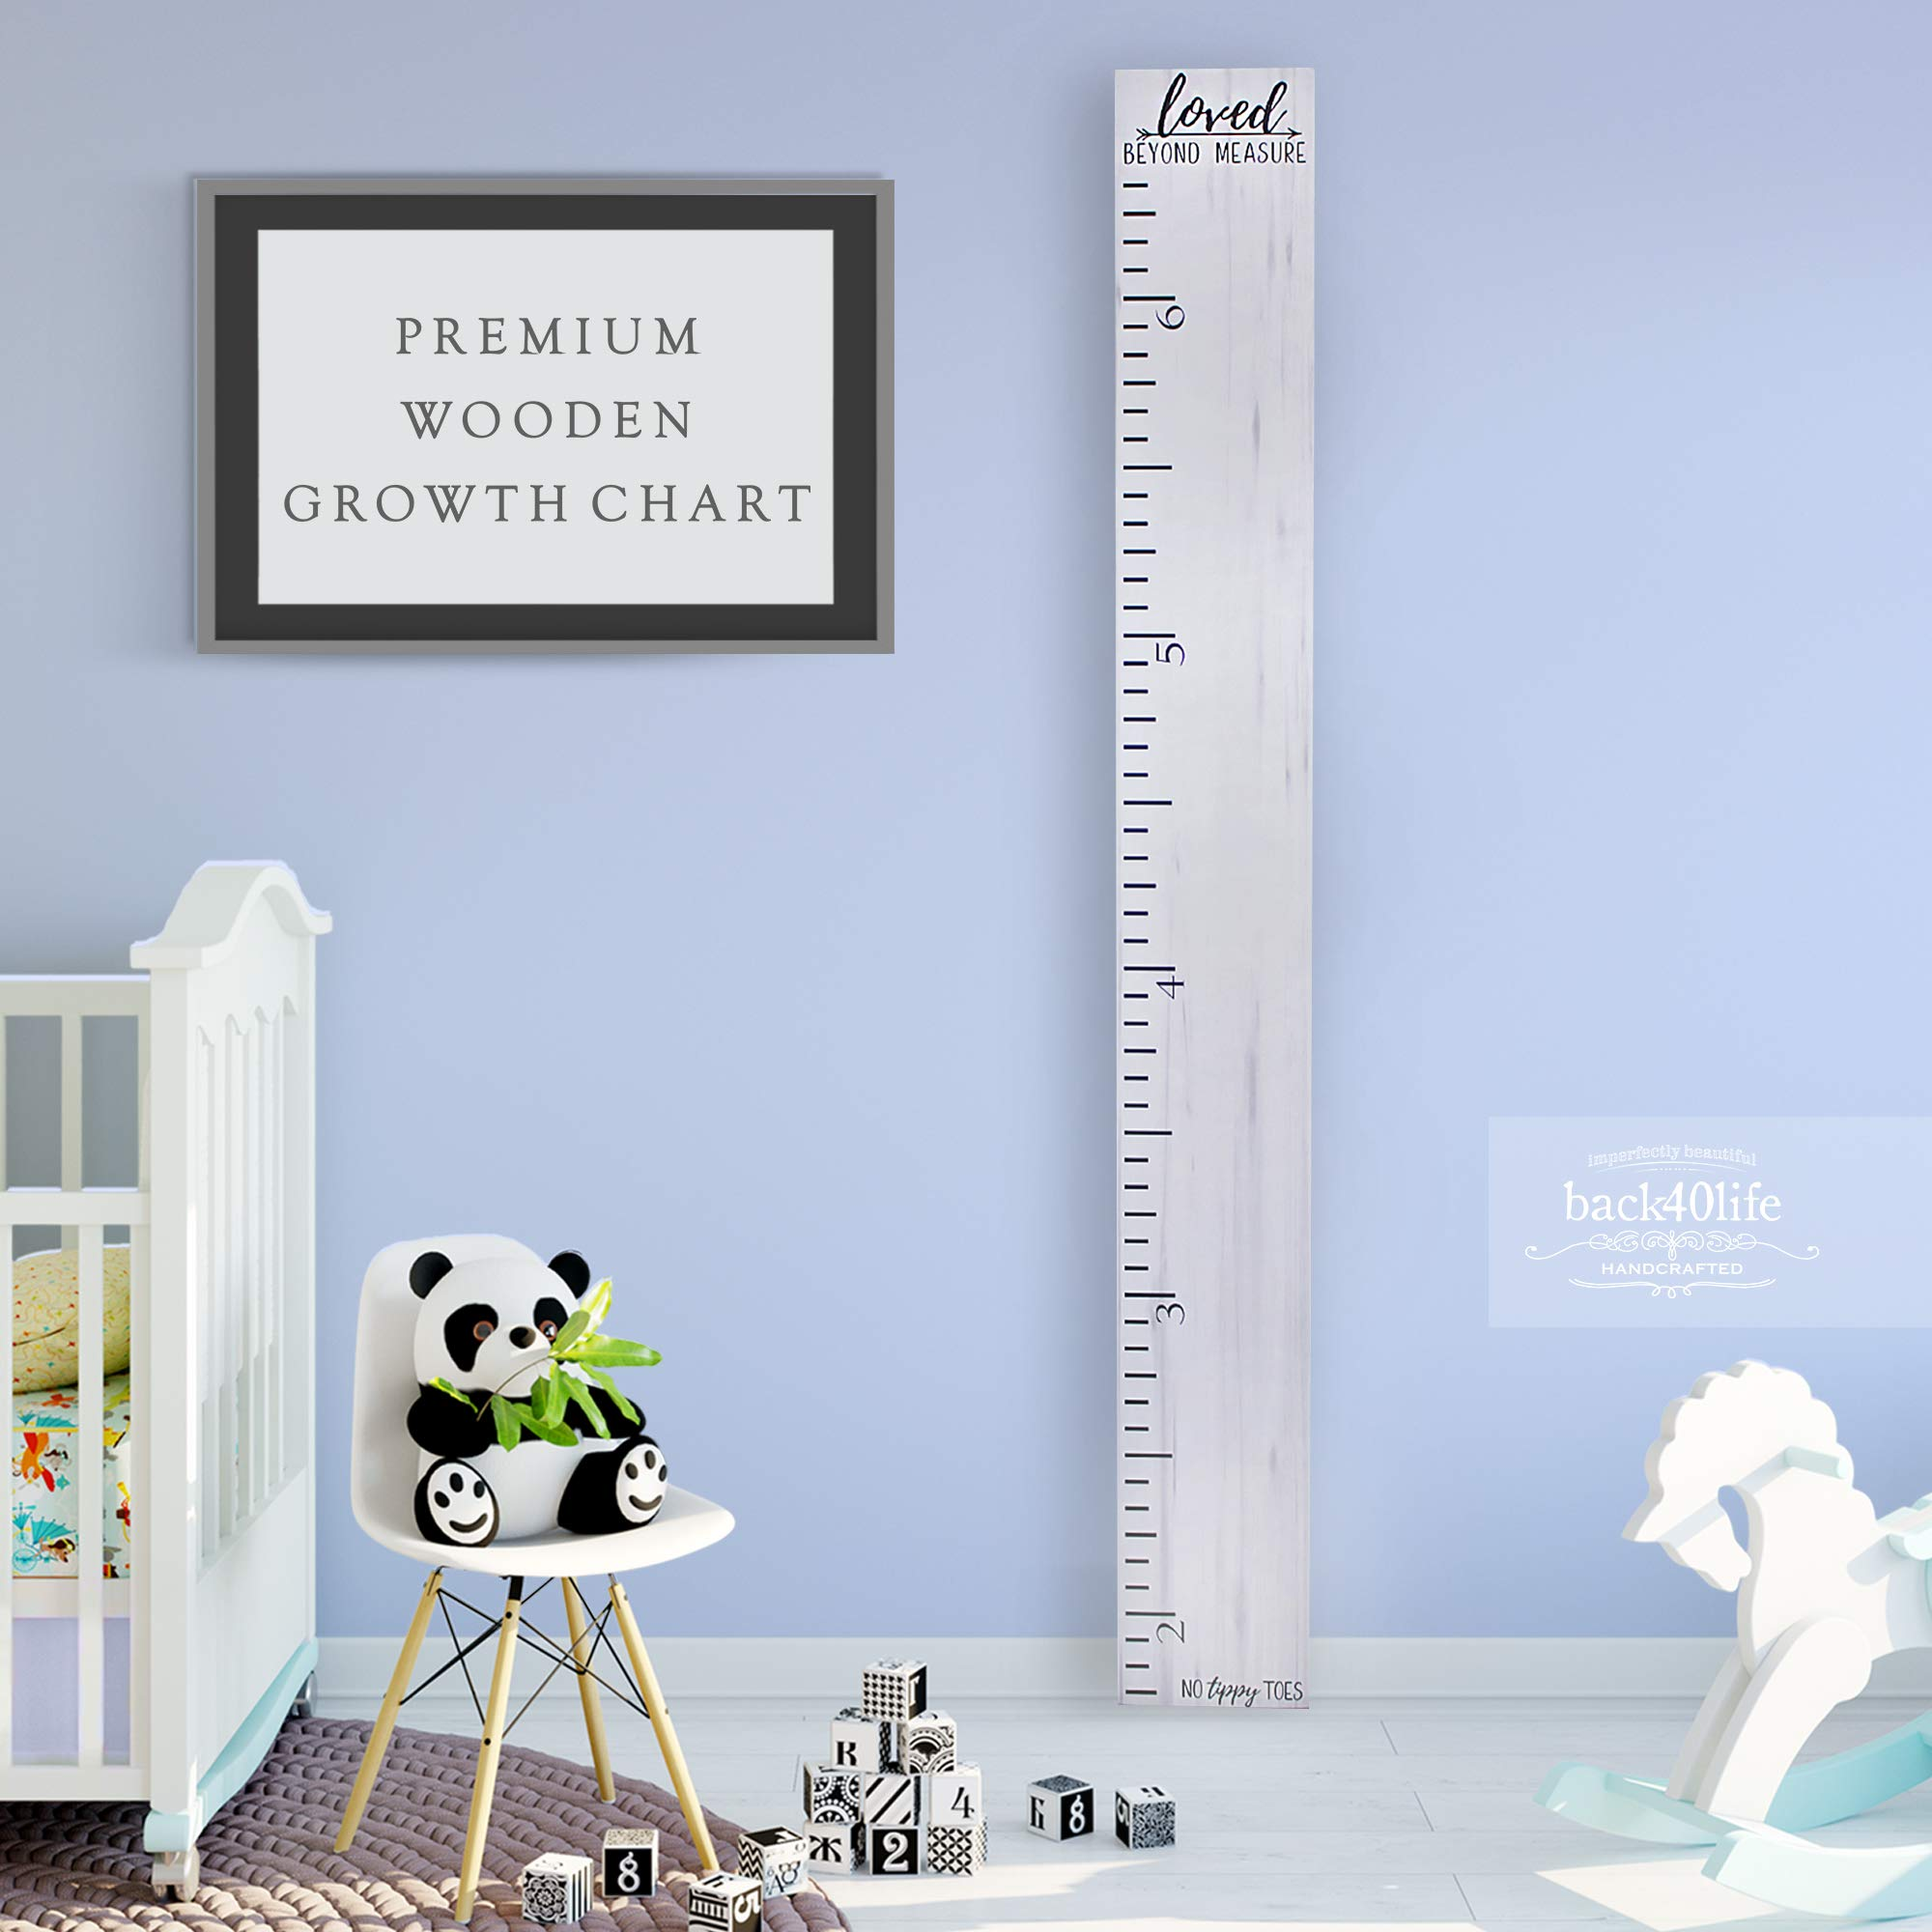 Back40Life - Premium Series - (No Tippy Toes - Loved Beyond Measure) Wooden Growth Chart Height Ruler (Weathered White) by Back40Life (Image #1)